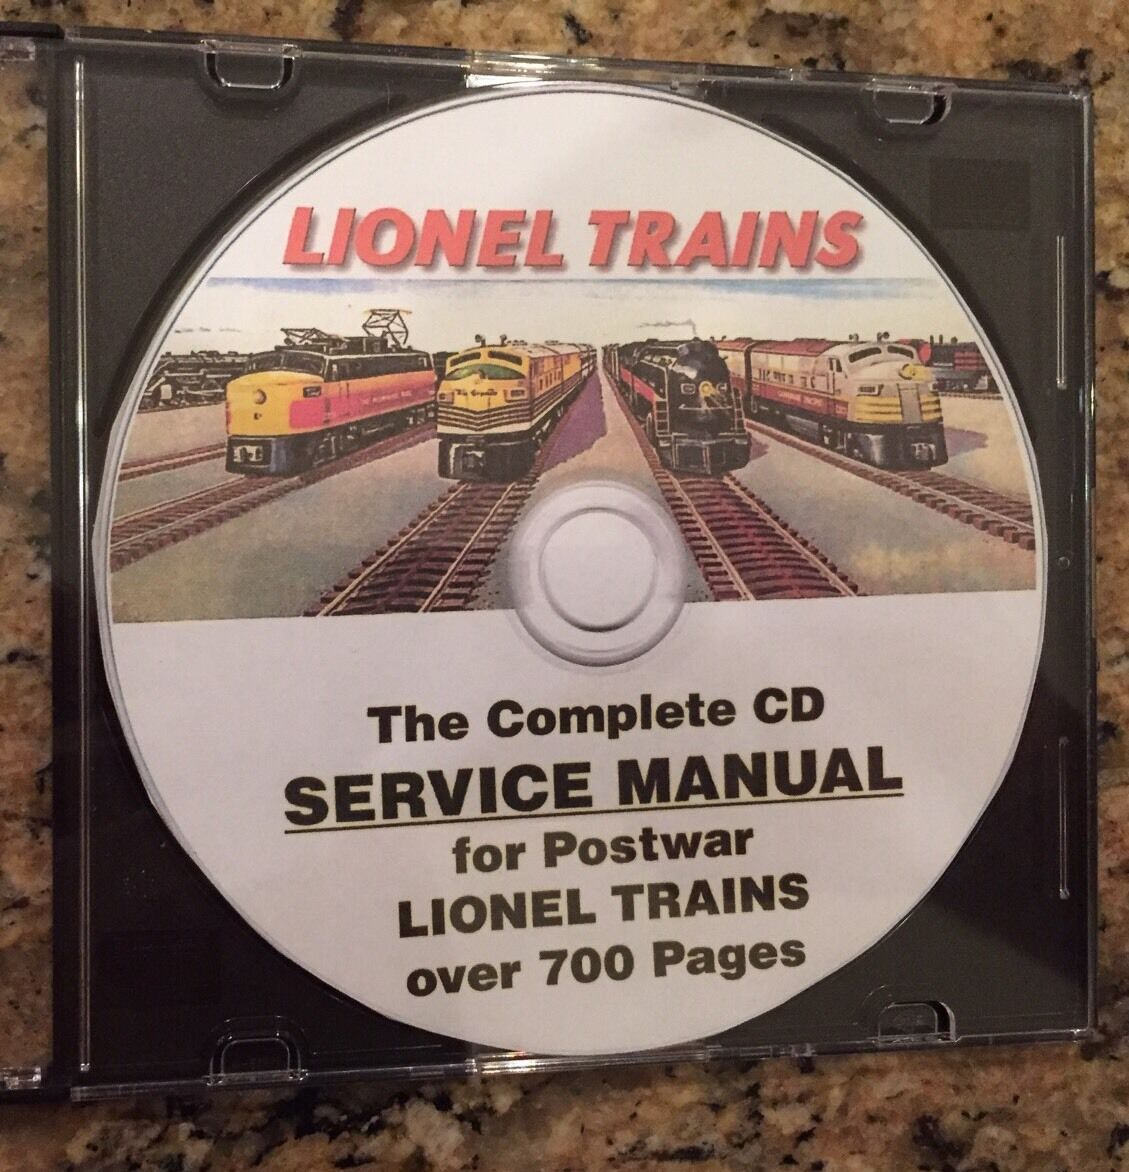 Lionel Complete Service Manual Postwar Trains Cd Pdf Disk 2020 681 Wiring Diagrams 1 Of 11 See More